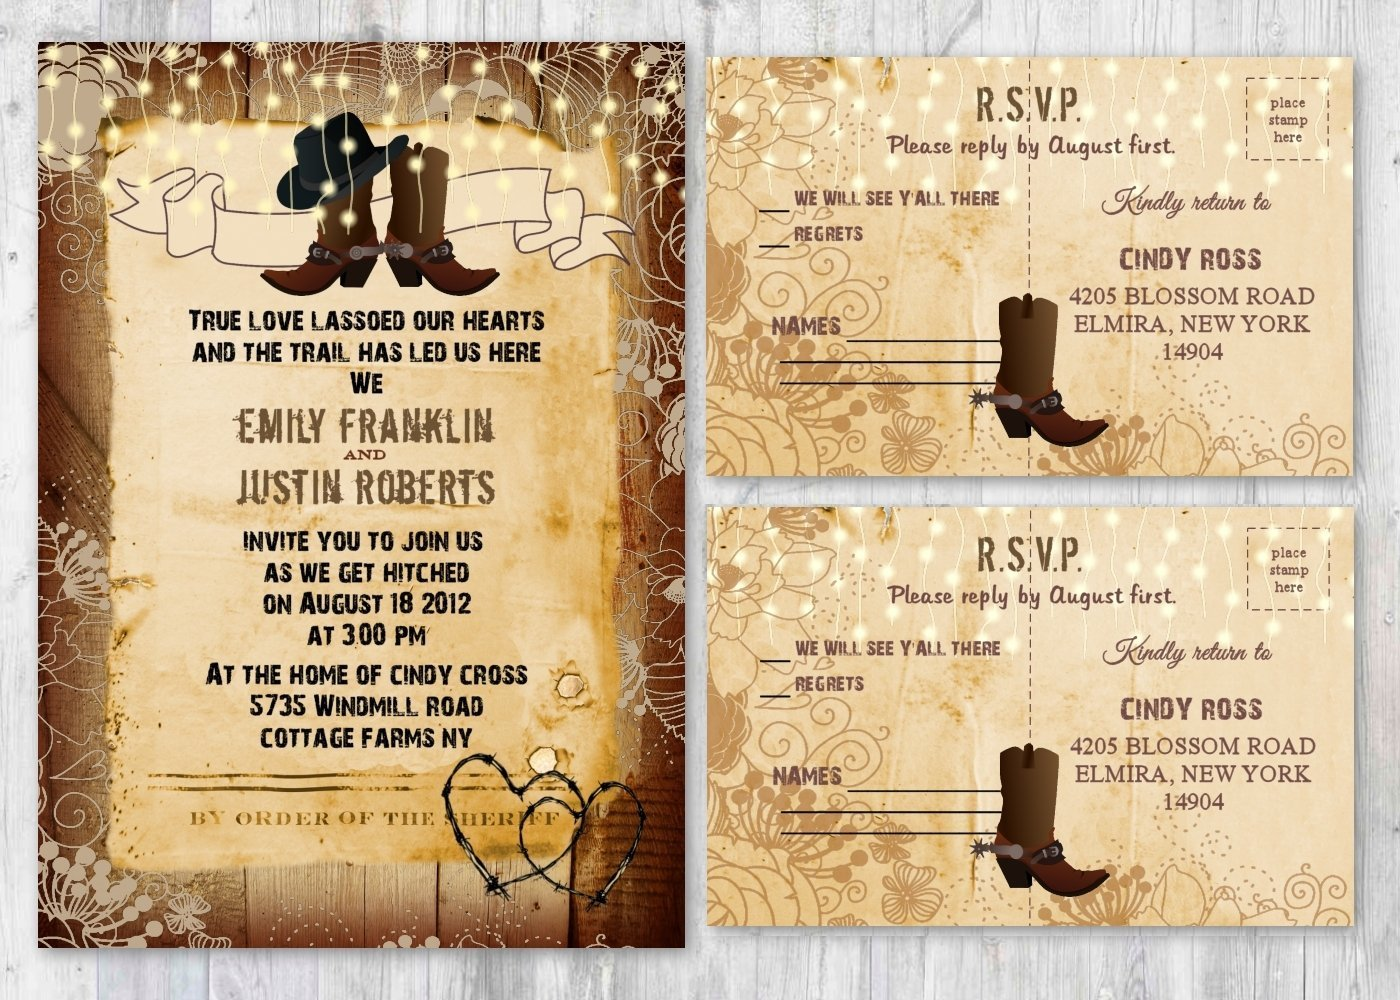 Set of 130 Western Rustic Country Themed Wedding Invitations - Invitation & RSVP Cards